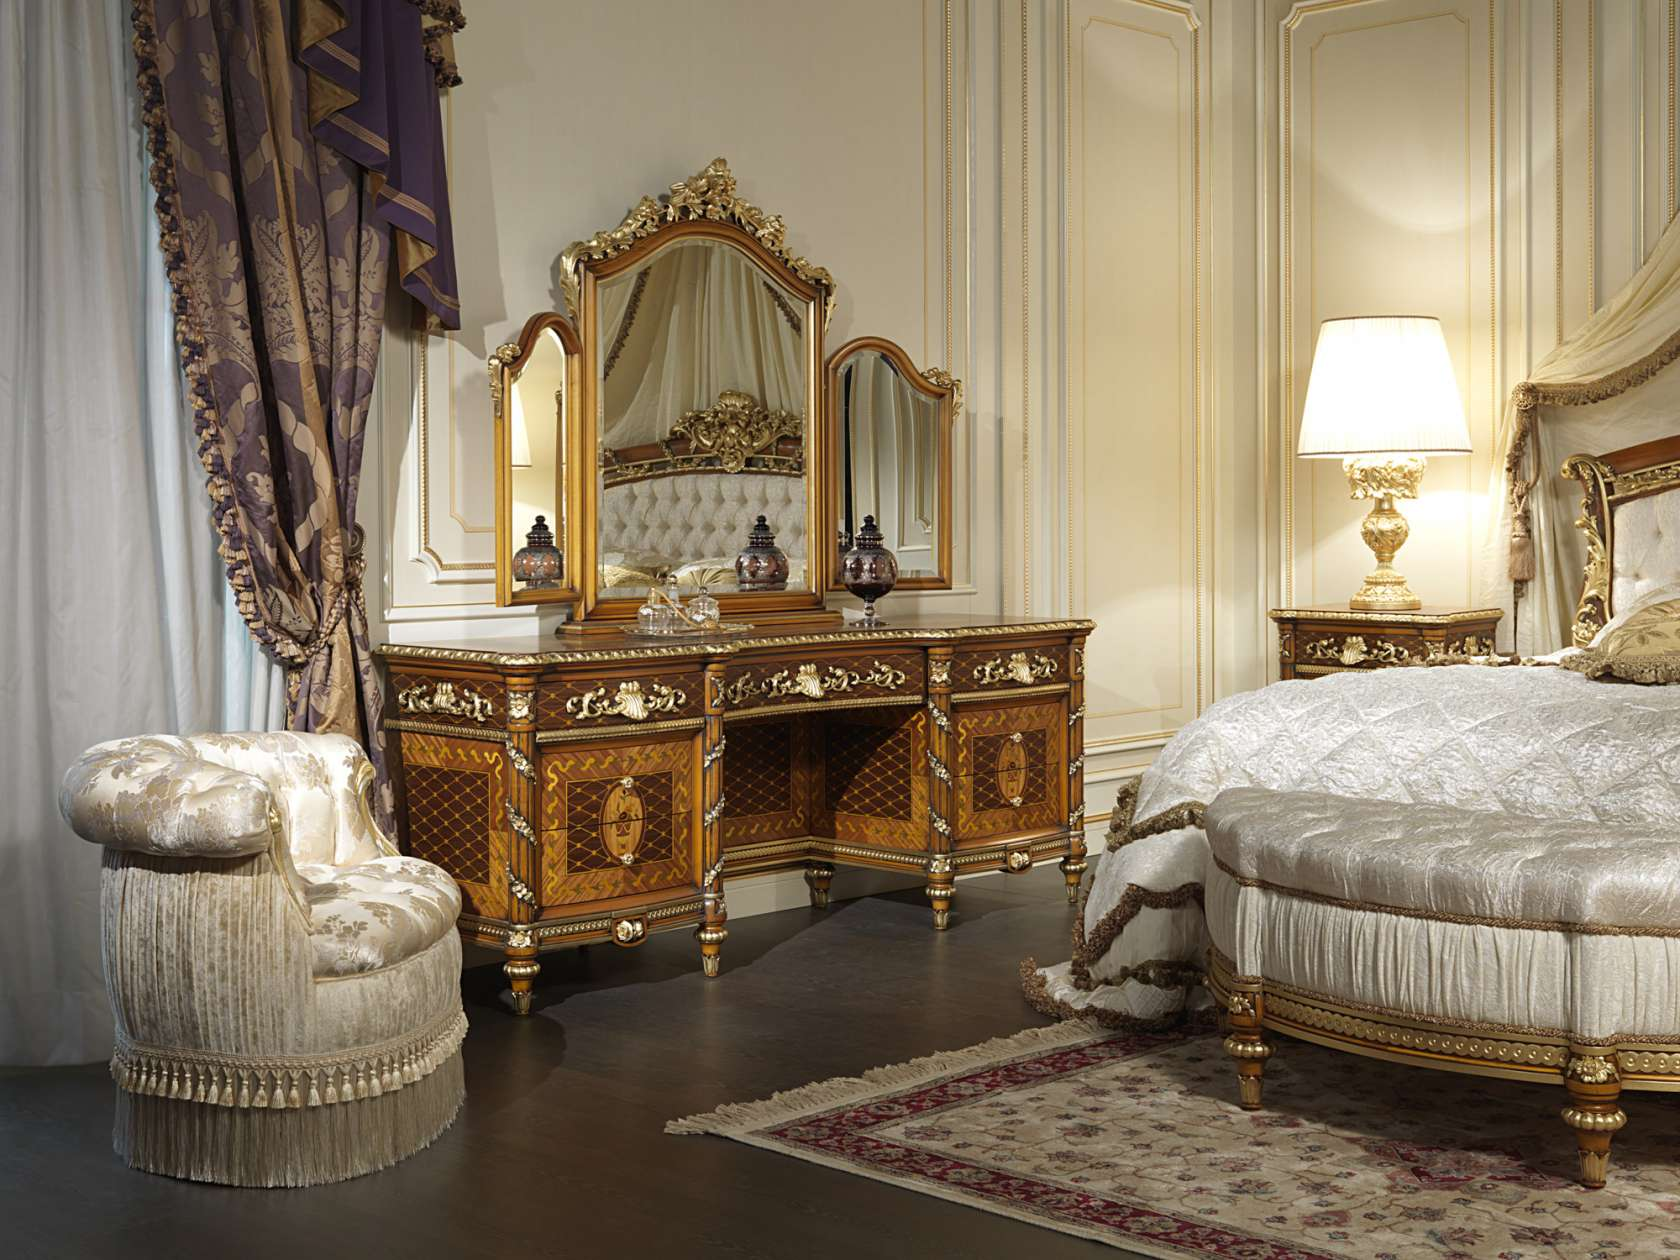 Louis xvi bedroom furniture - Toilette And Mirror In Walnut Of The Louis Xvi Bedroom Noce E Intarsi